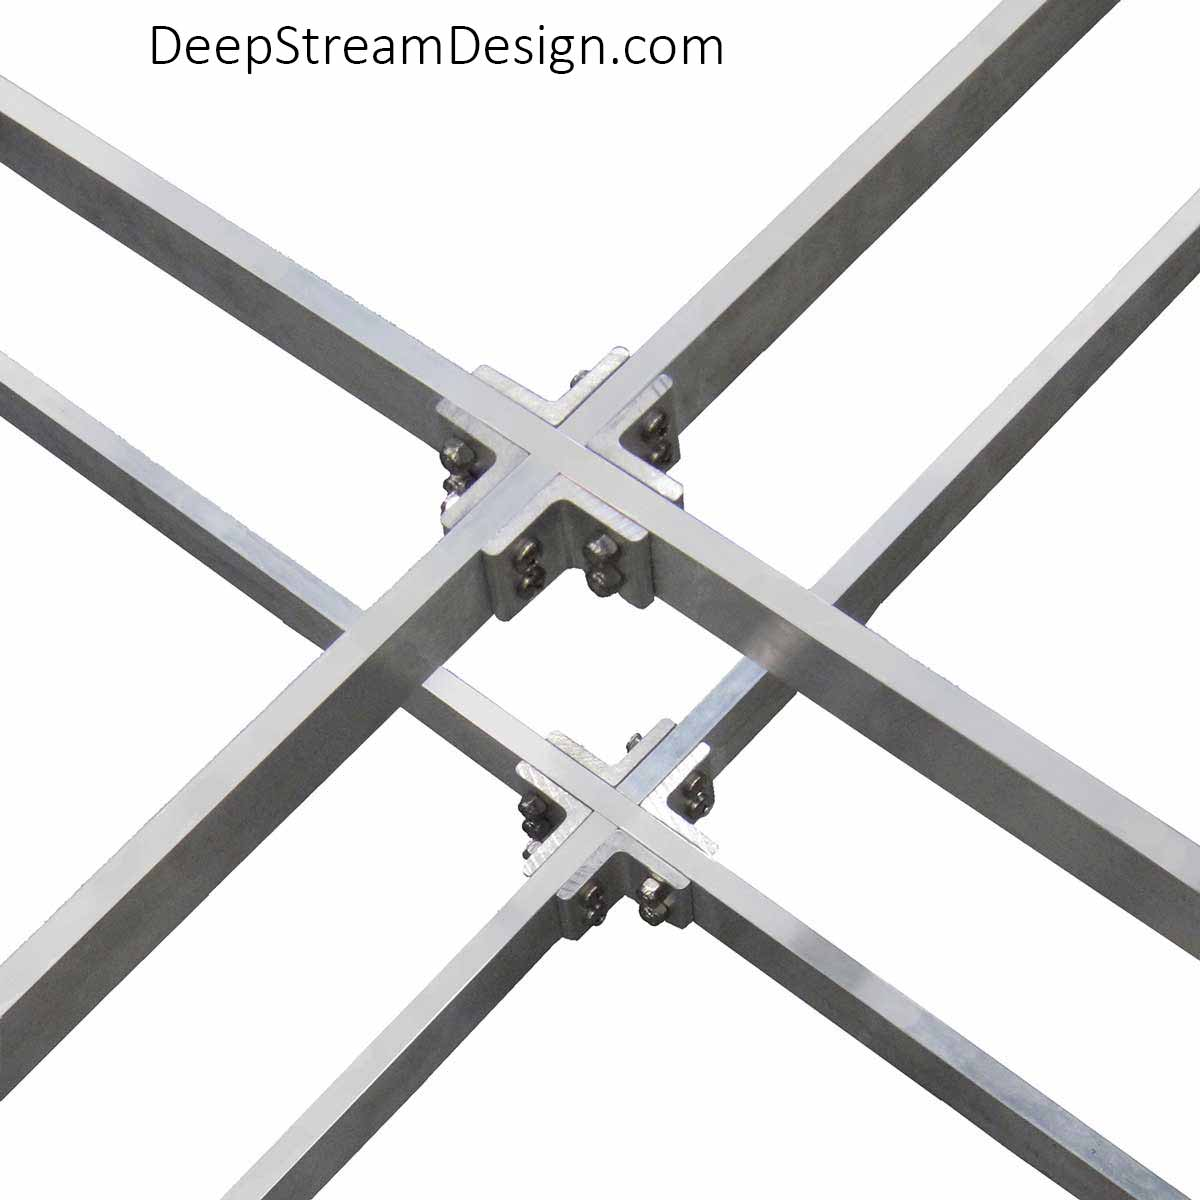 Studio photo showing the detail of the double aluminum cross bracing joining DeepStream's trademark proprietary structural aluminum frame.